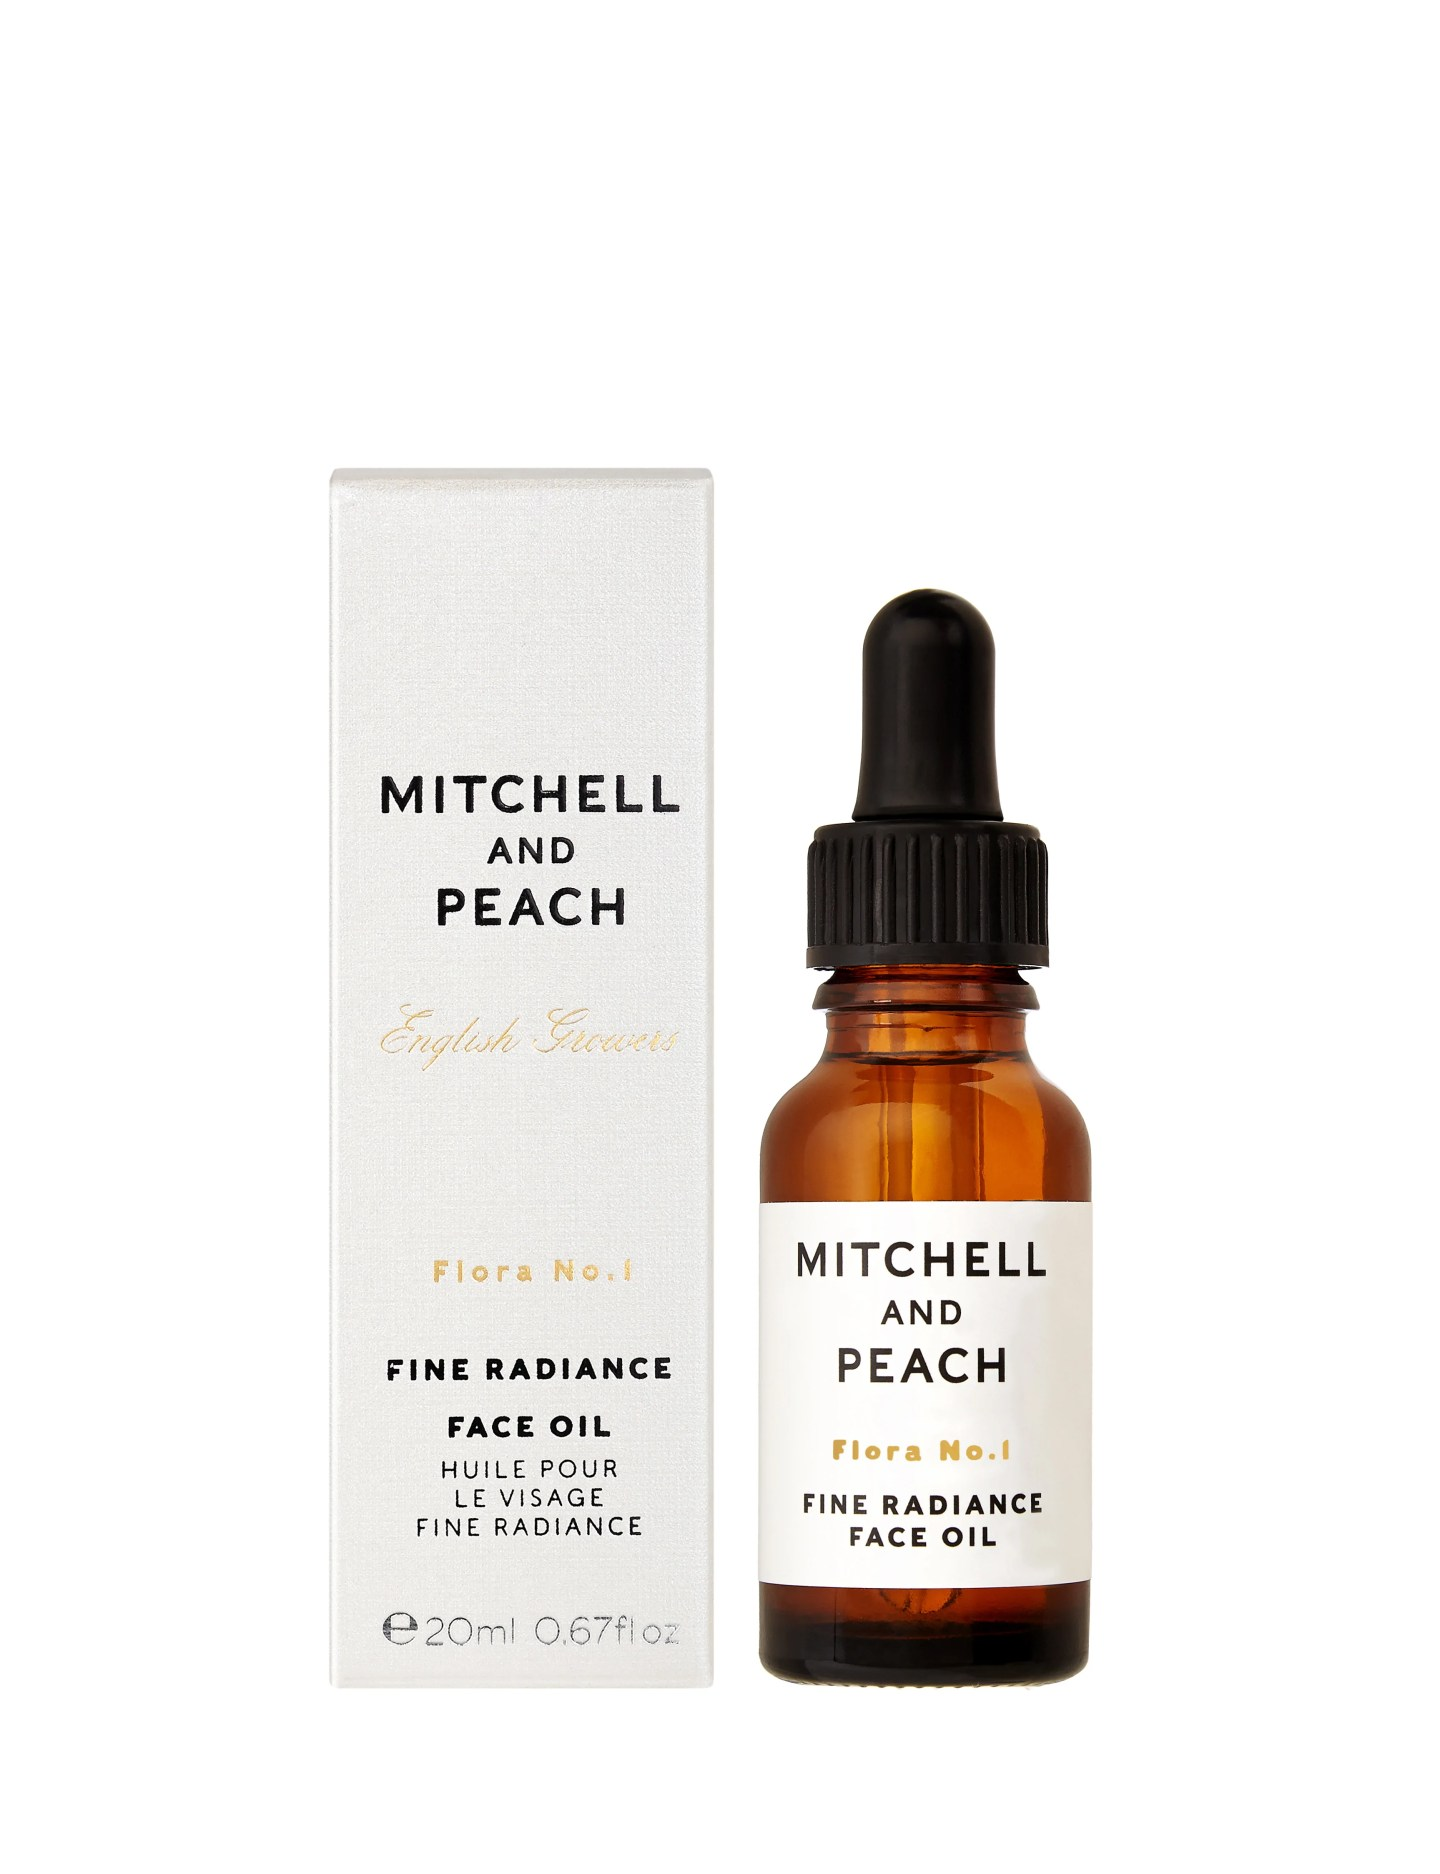 Mitchell and Peach Flora No. 1 Fine Radiance Facial Oil